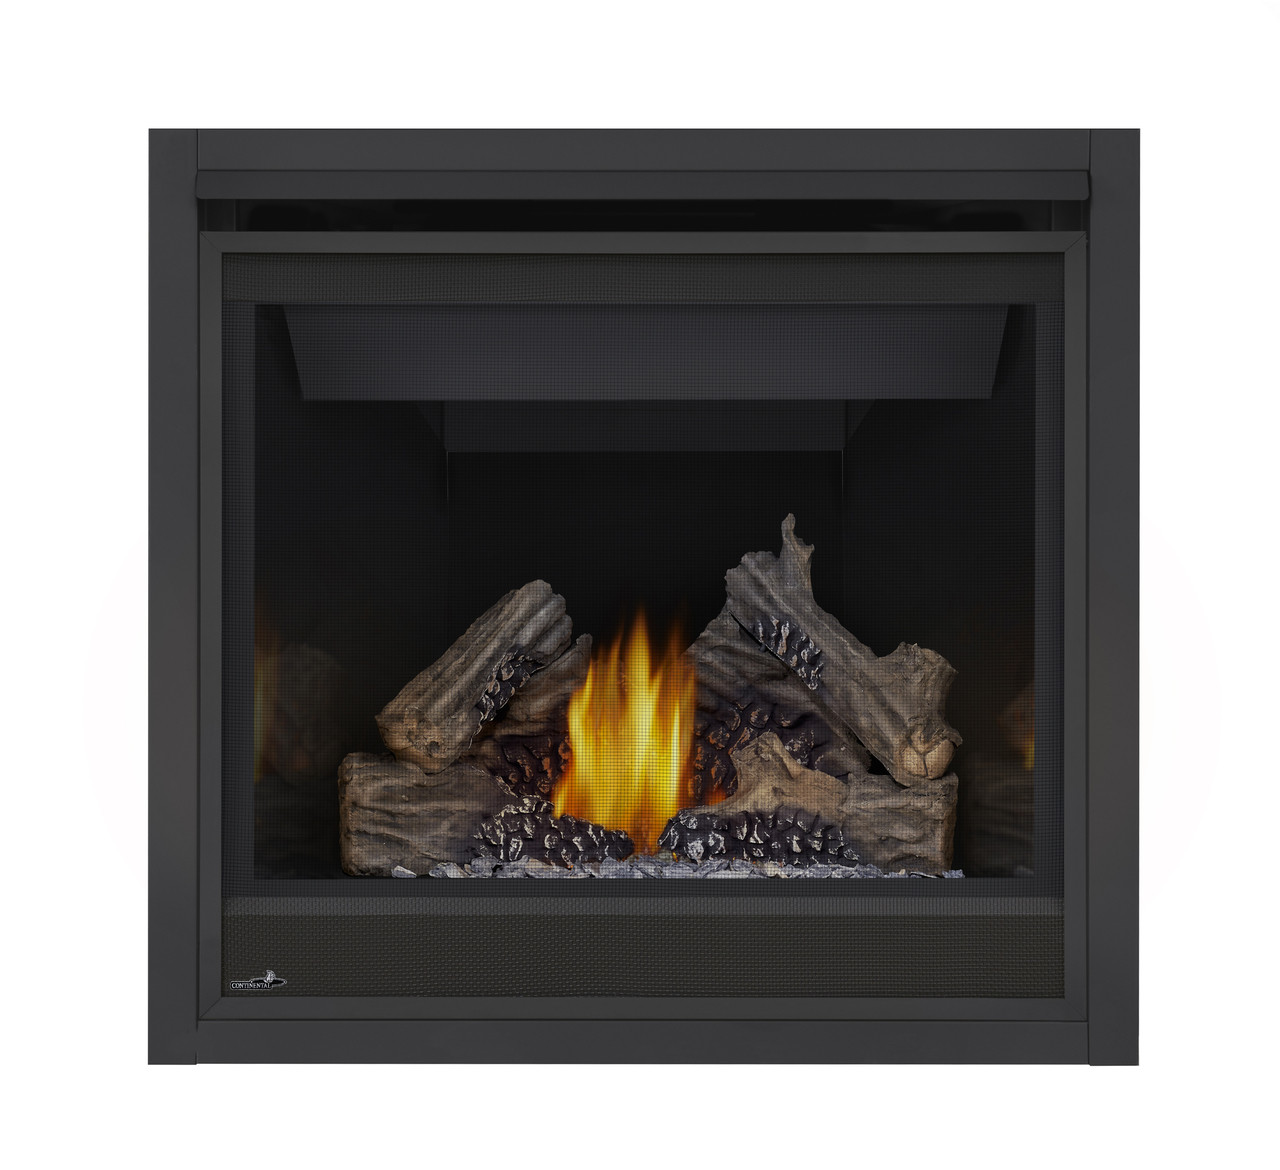 PHAZER Log Set, Standard front, MIRRO-FLAME Porcelain Reflective Radiant Panels